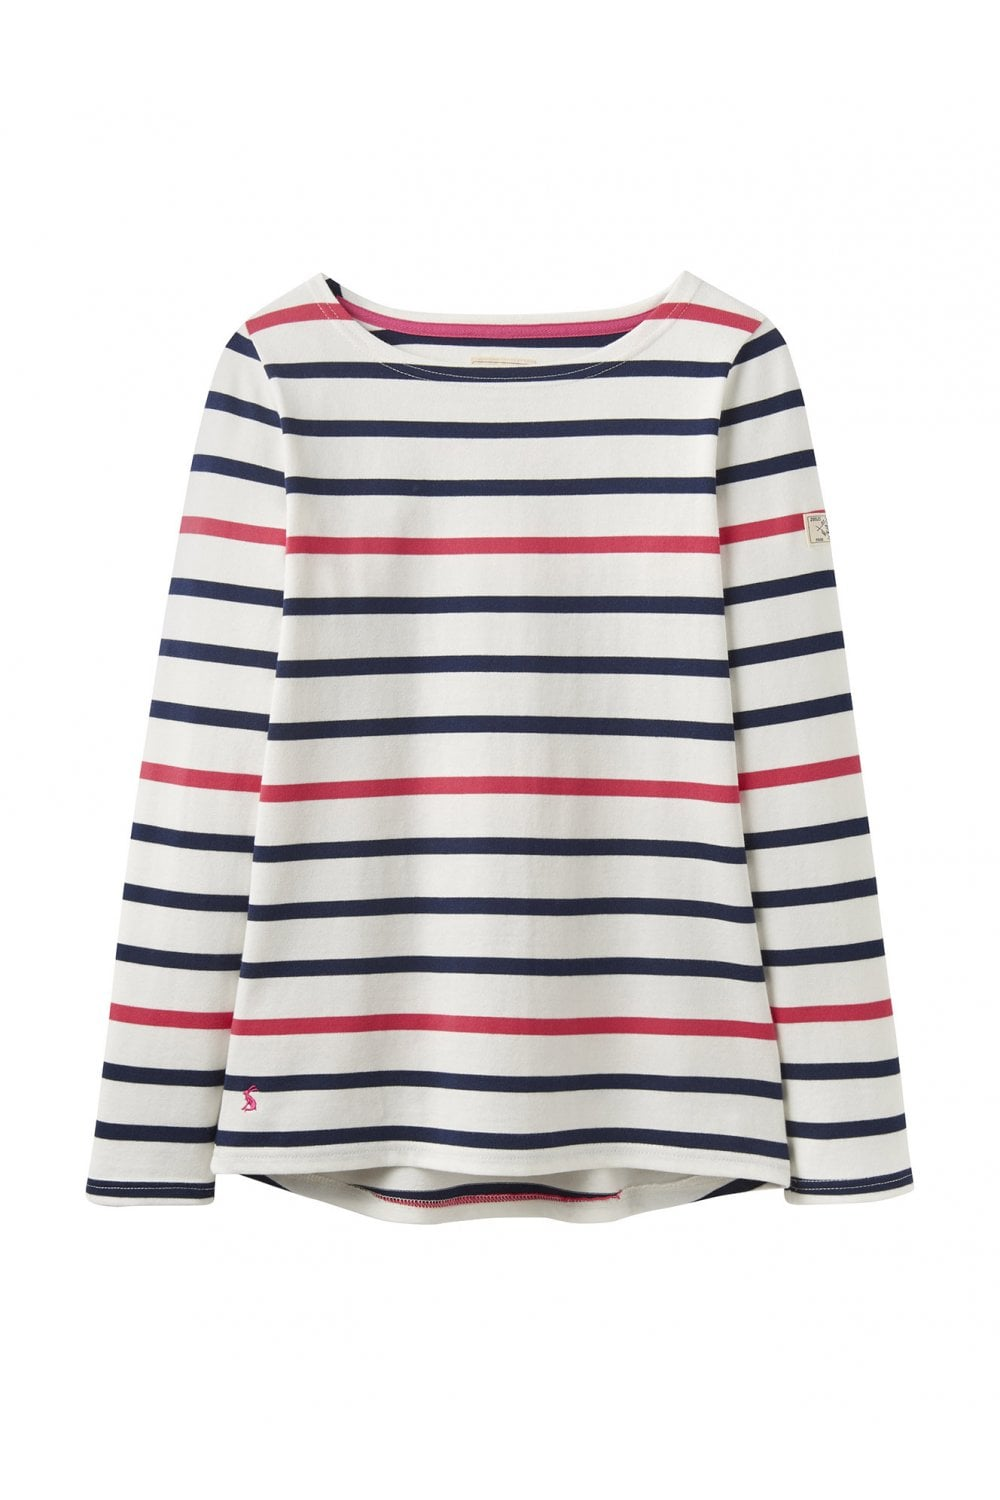 95774683e Joules Womens Harbour Jersey Top - Navy Raspberry Stripe ...